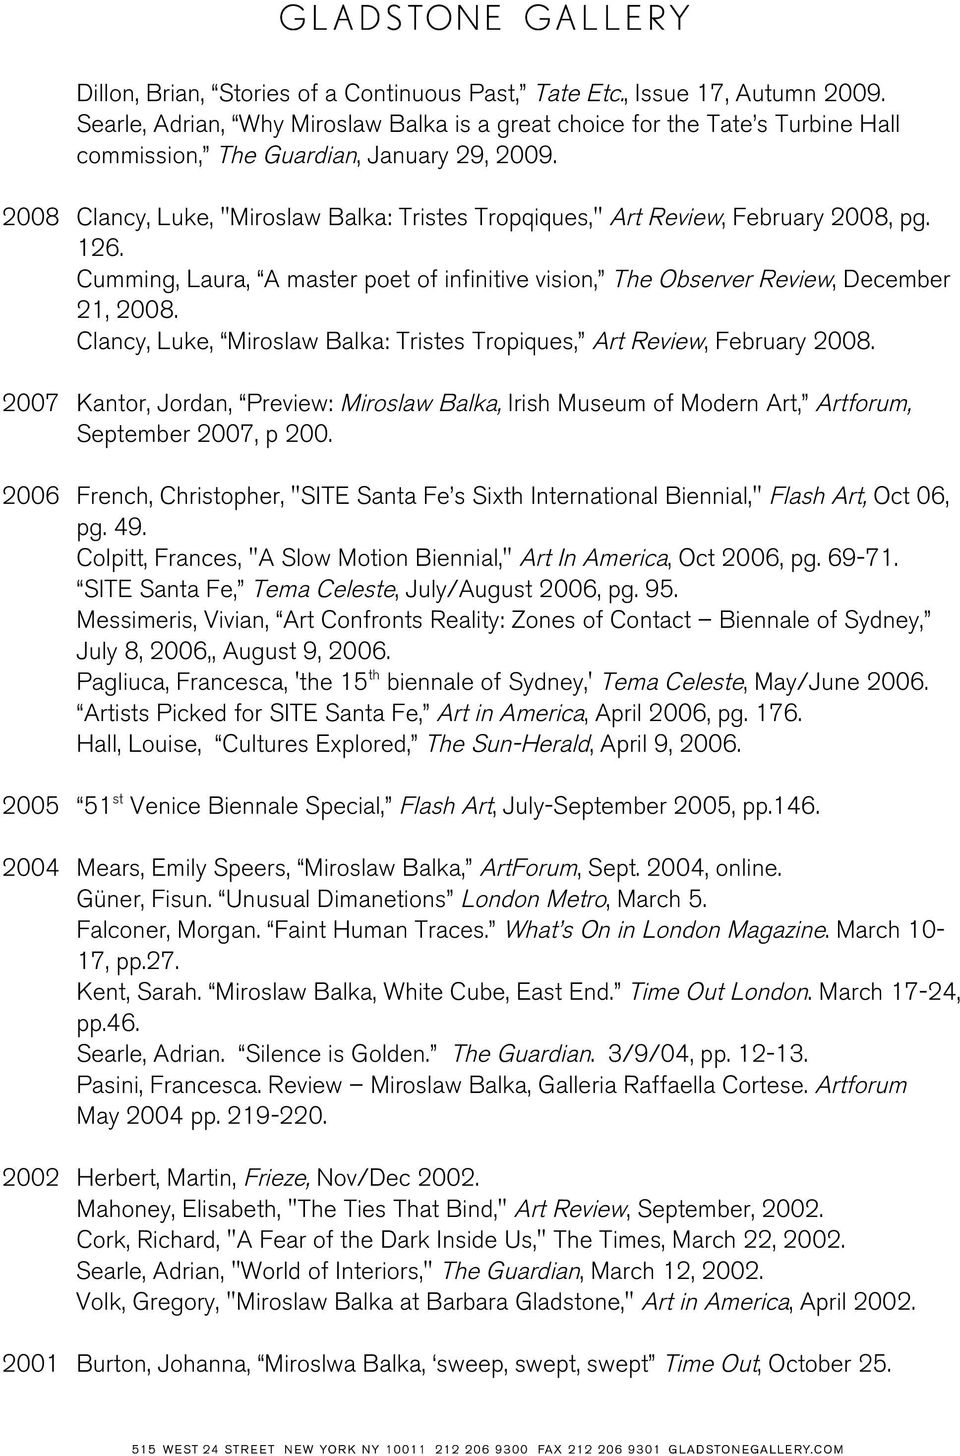 "2008 Clancy, Luke, ""Miroslaw Balka: Tristes Tropqiques,"" Art Review, February 2008, pg. 126. Cumming, Laura, A master poet of infinitive vision, The Observer Review, December 21, 2008."